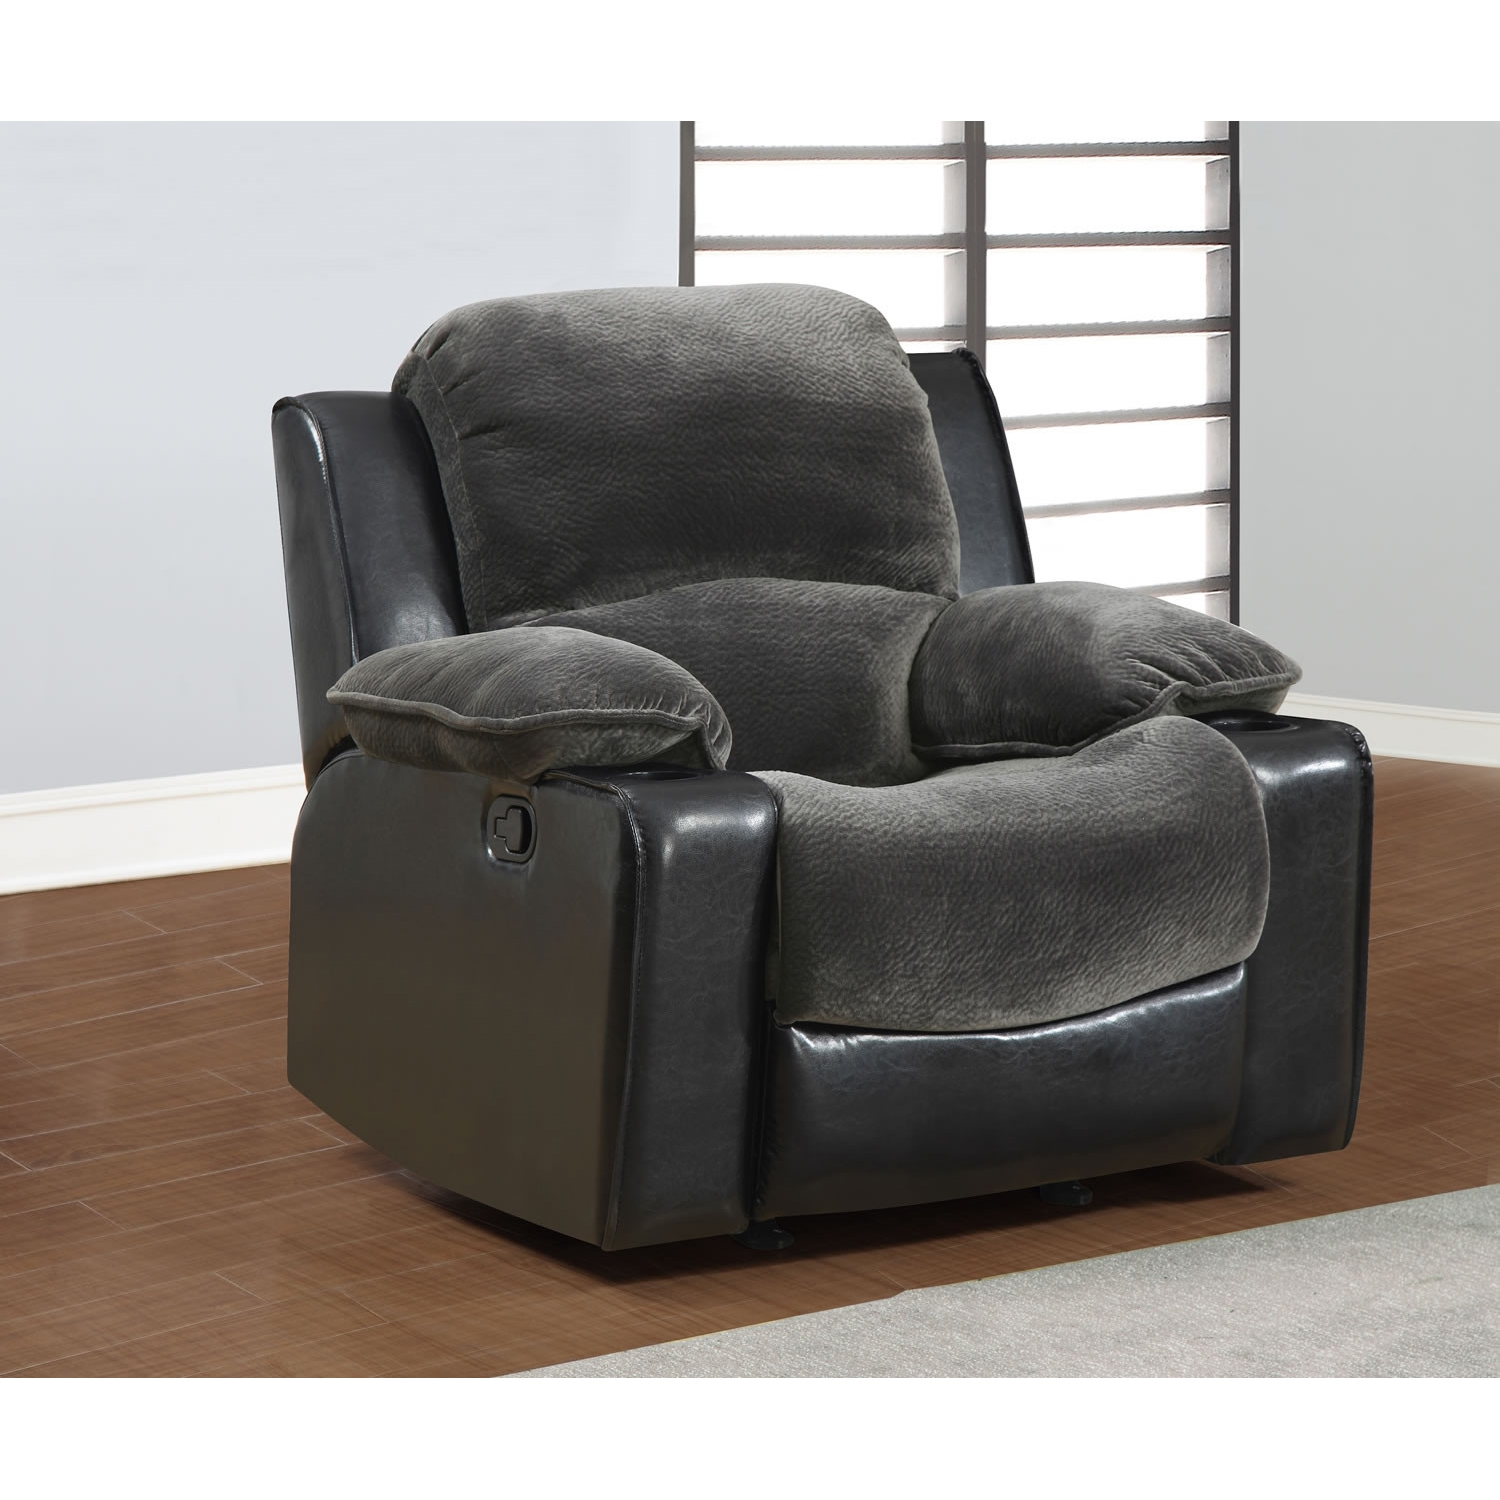 Cassidy Sofa Set in Gray/Black - GLO-U1301-CHMP-THU-SET